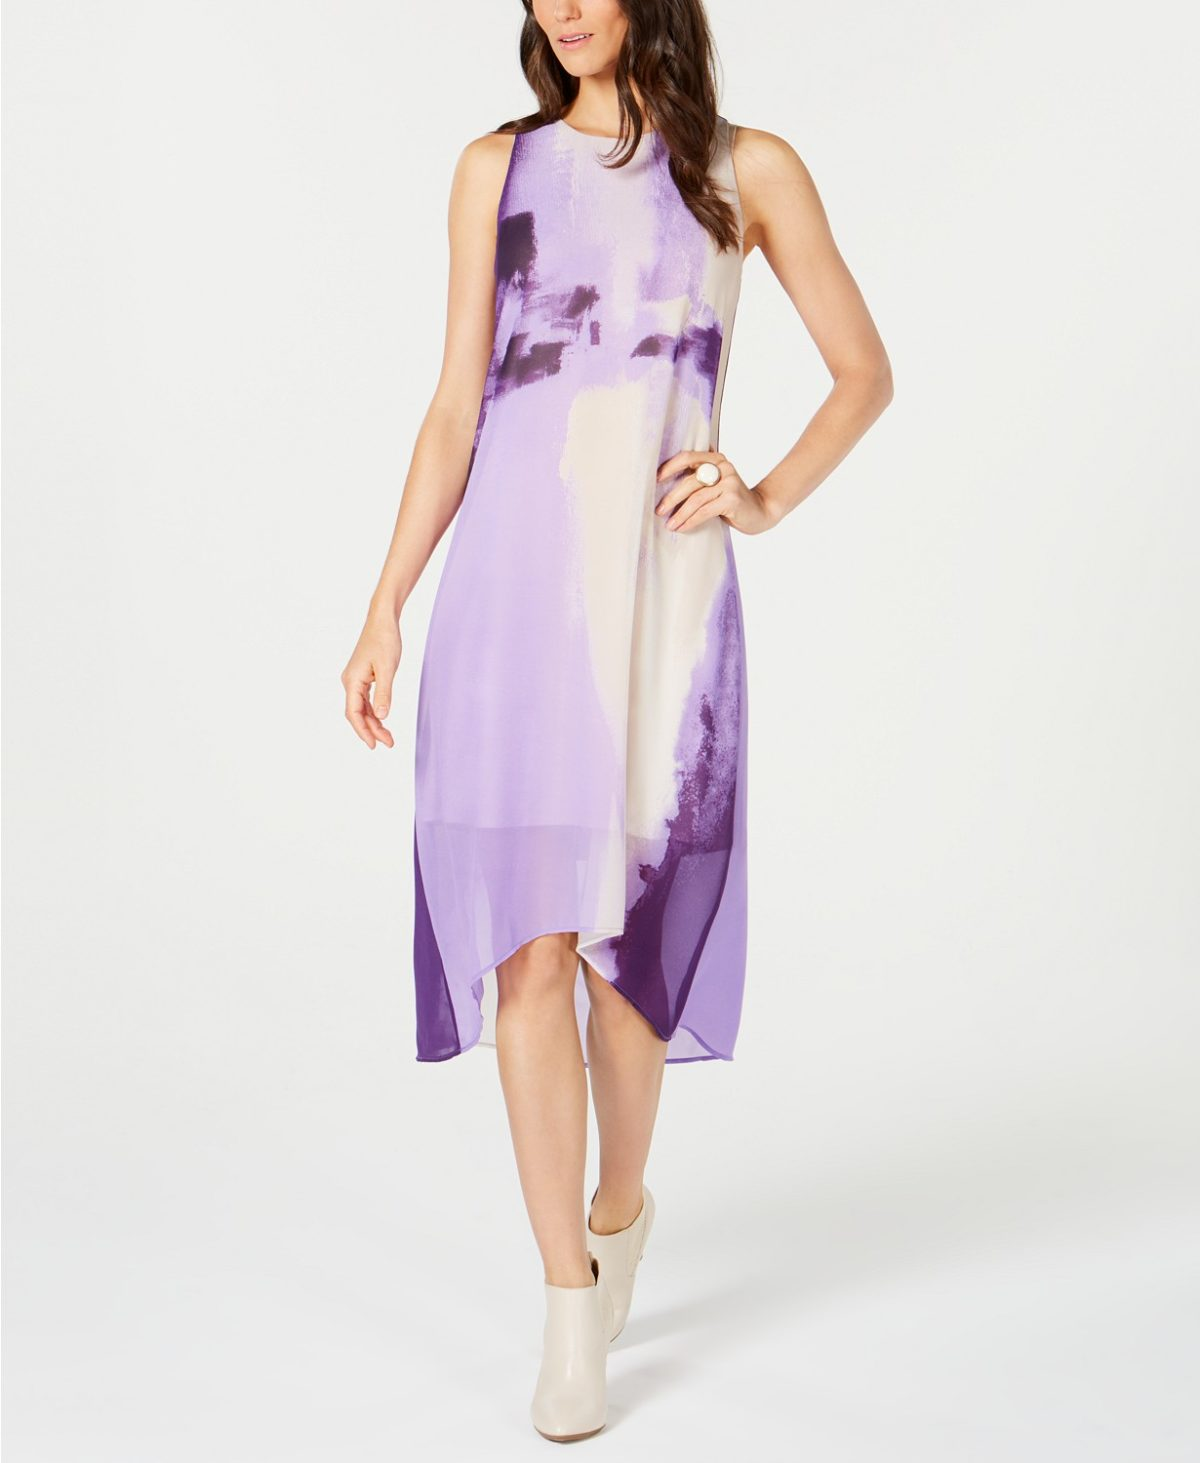 floral-print-high-low-dress-easter-fashion-for-women